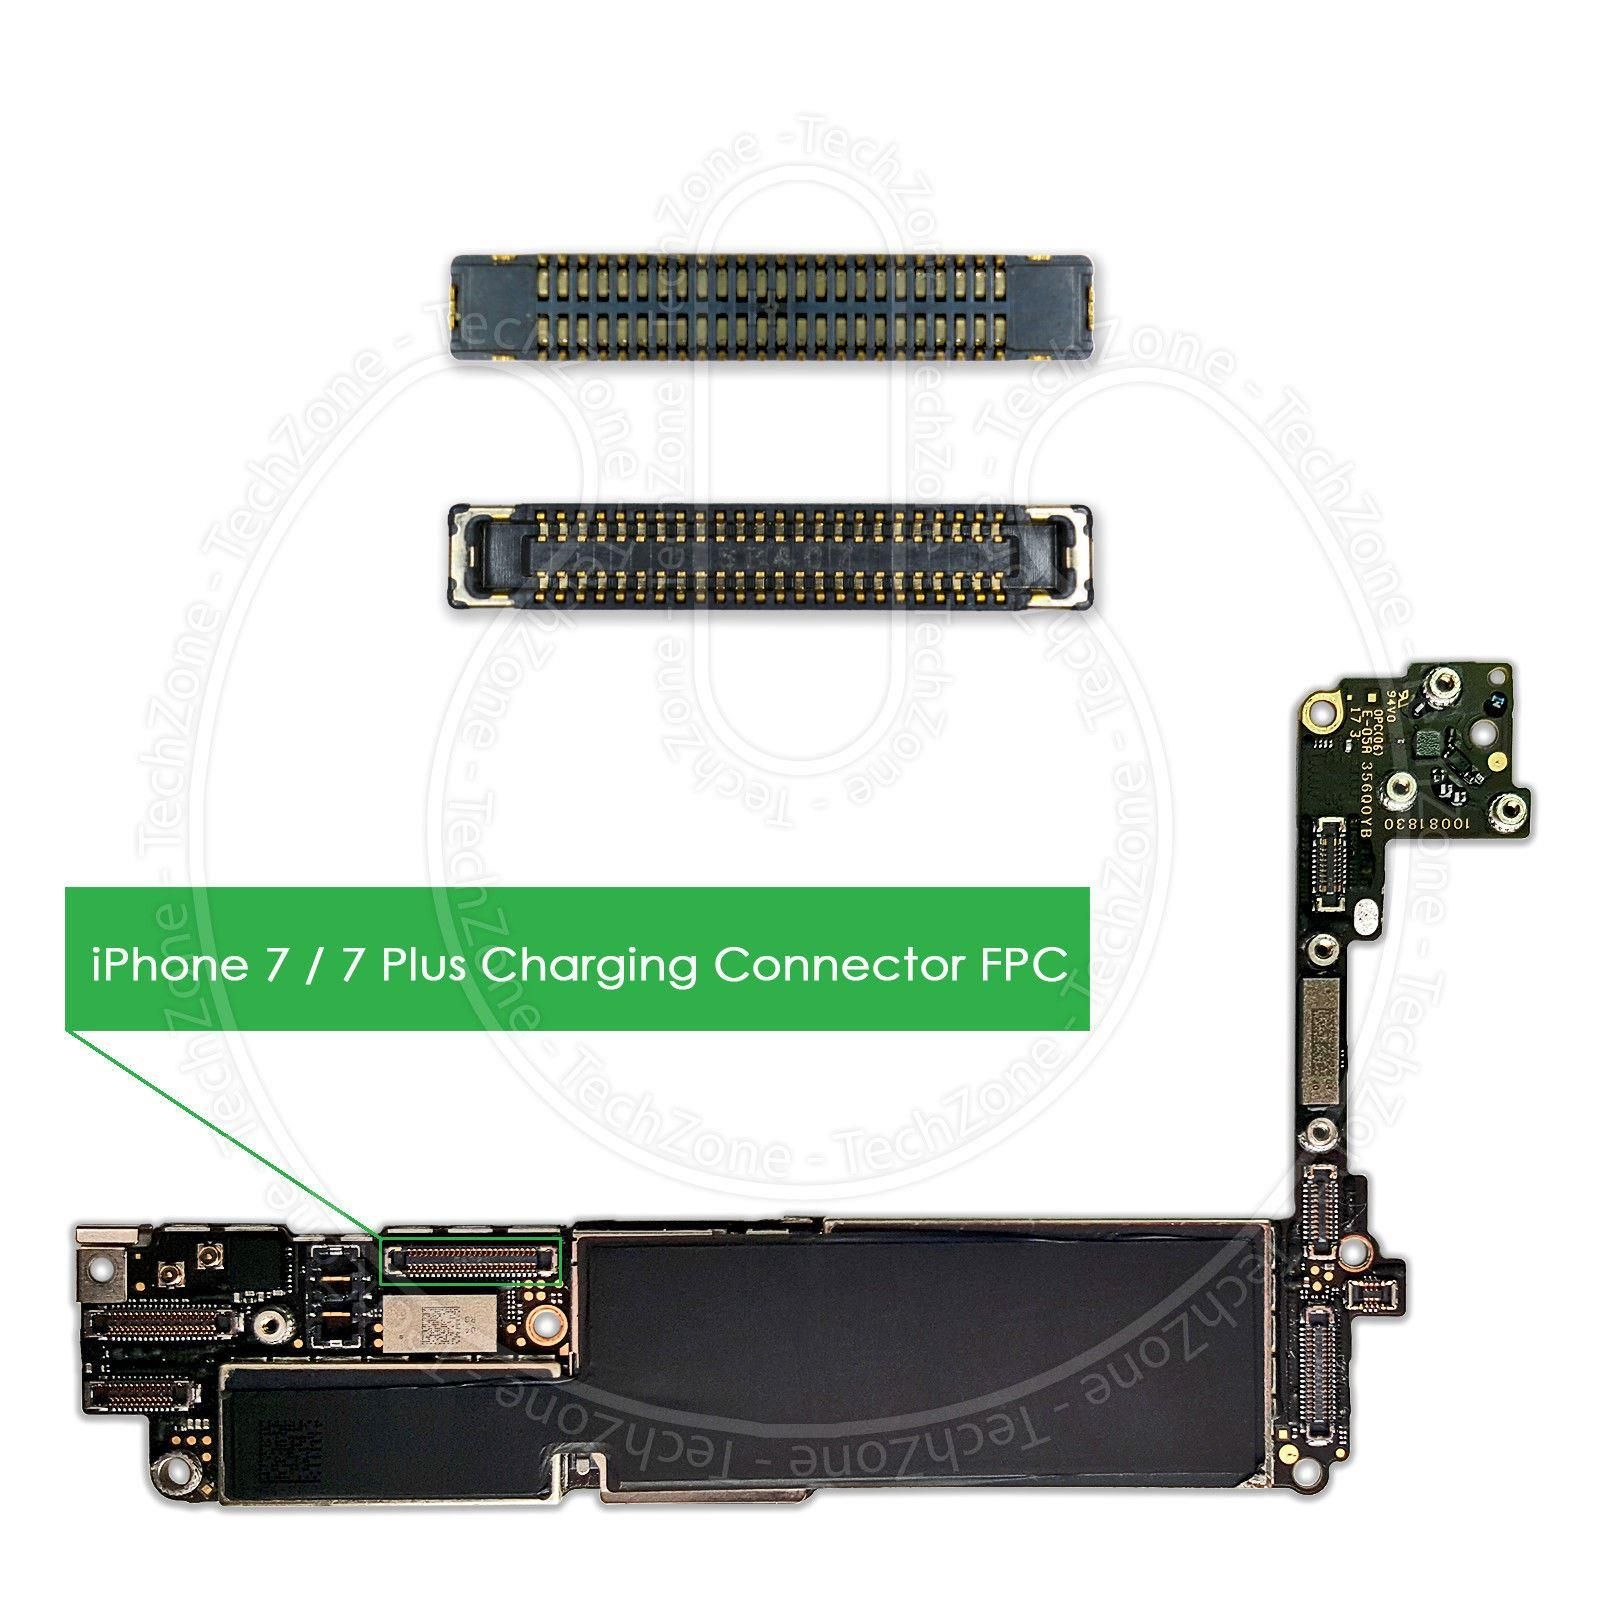 separation shoes c8423 034a5 Apple iPhone 7 Logic Board LCD Screen Touch FPC Connector Terminal J4502